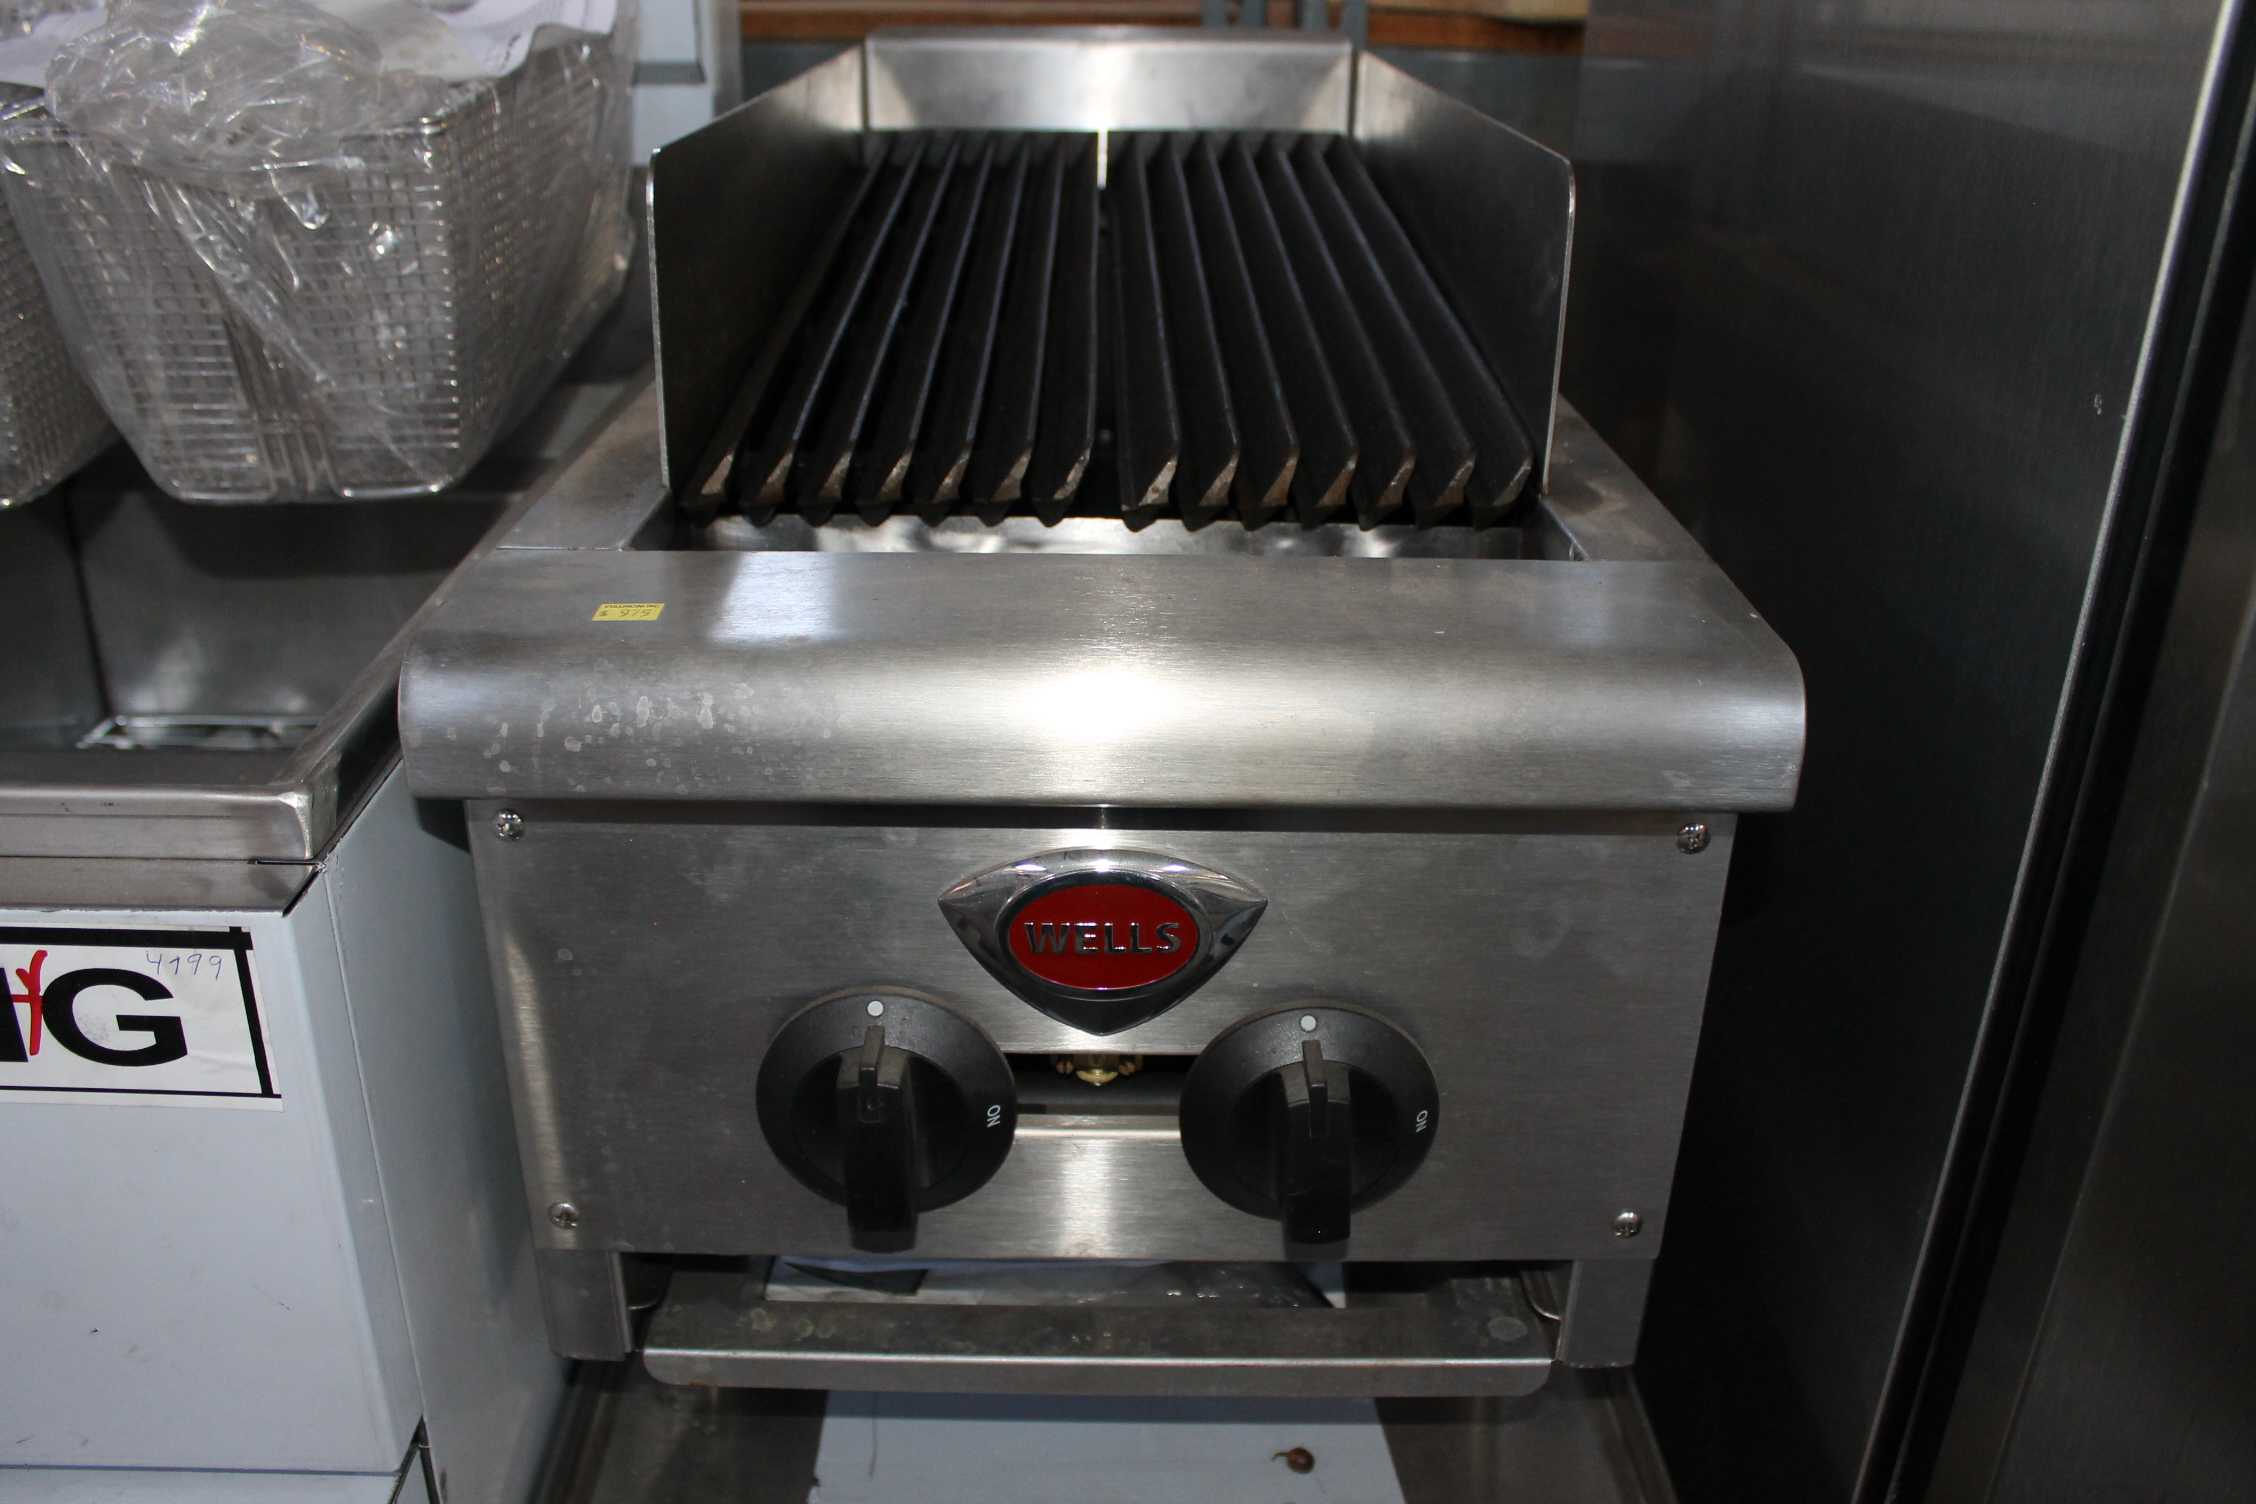 Used Cooking Equipment